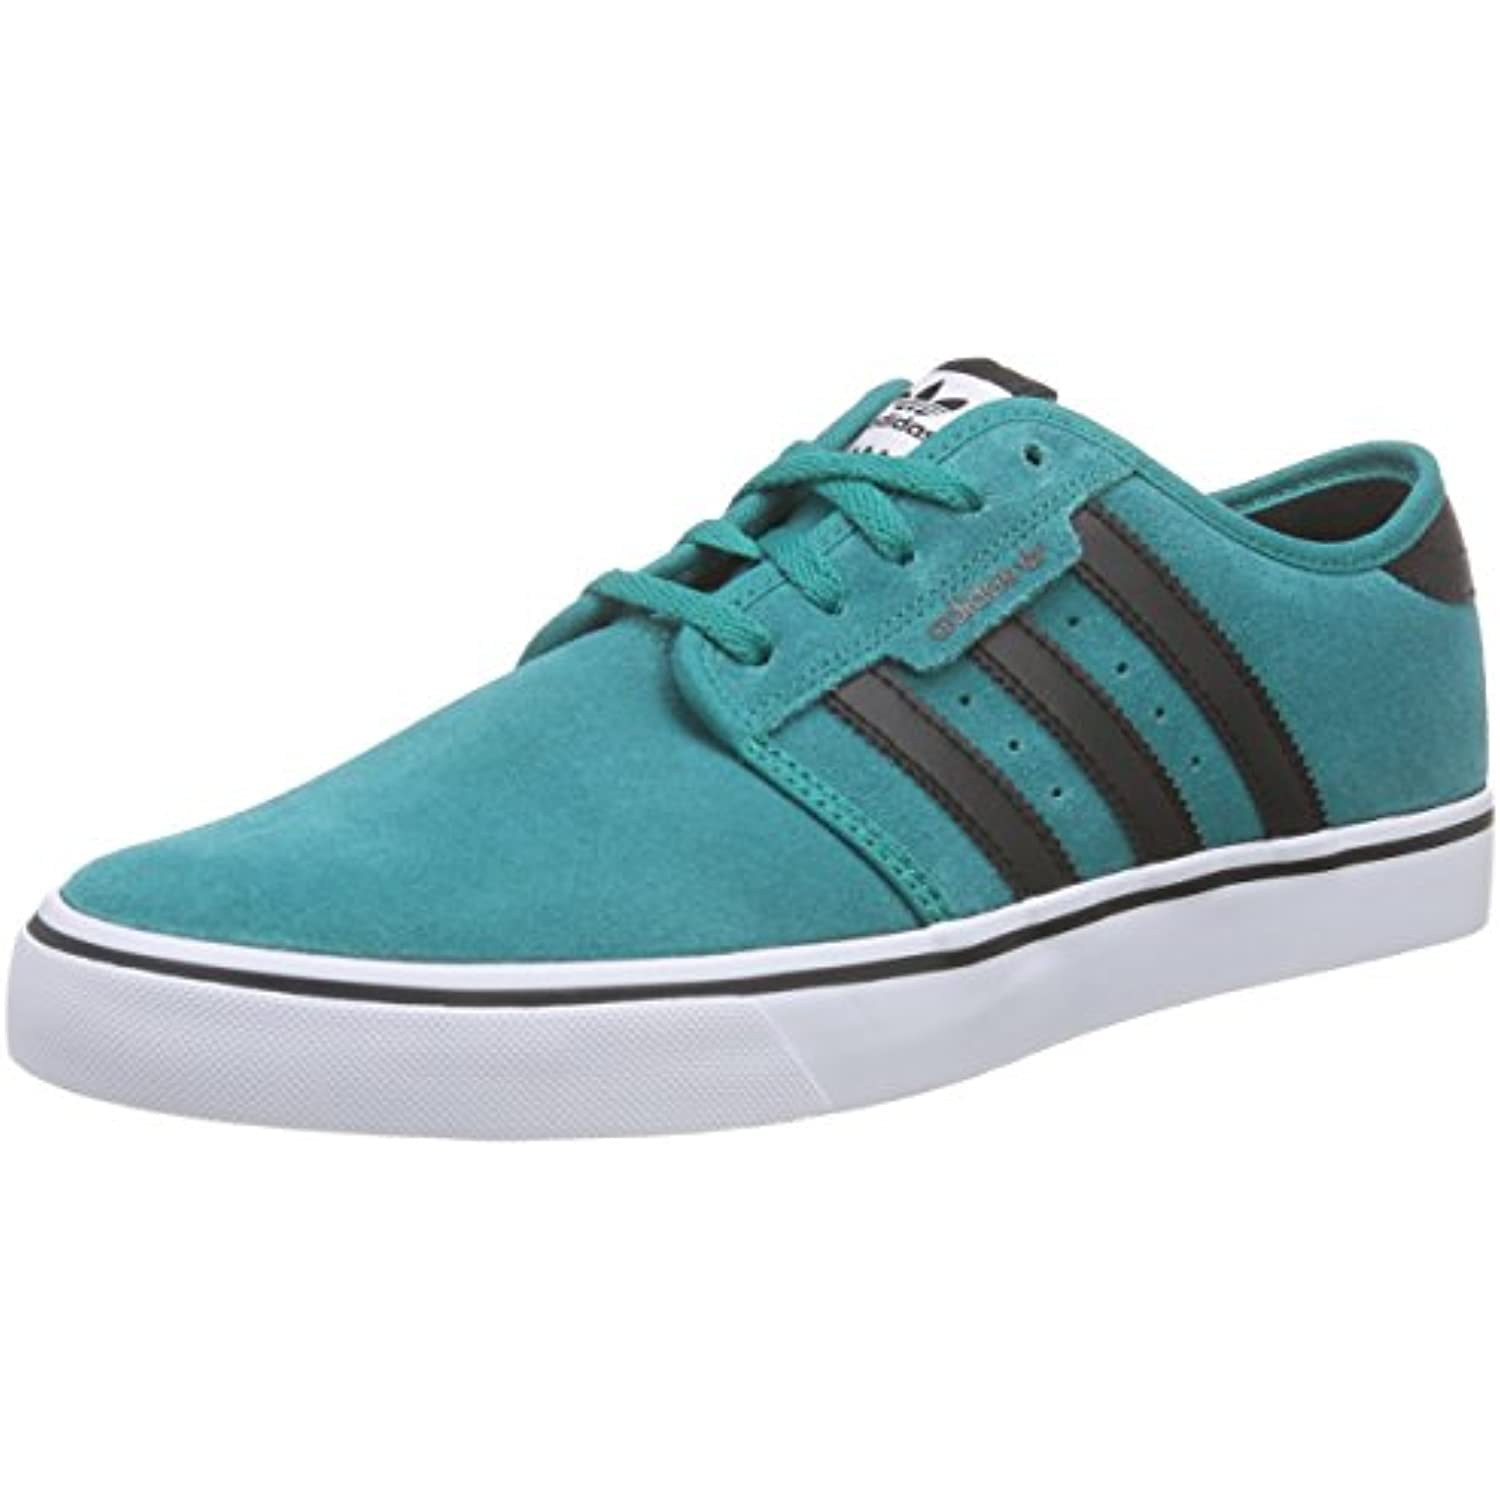 Baskets Seeley Adidas B01b60fty4 Homme Basses Seeley wv4vB